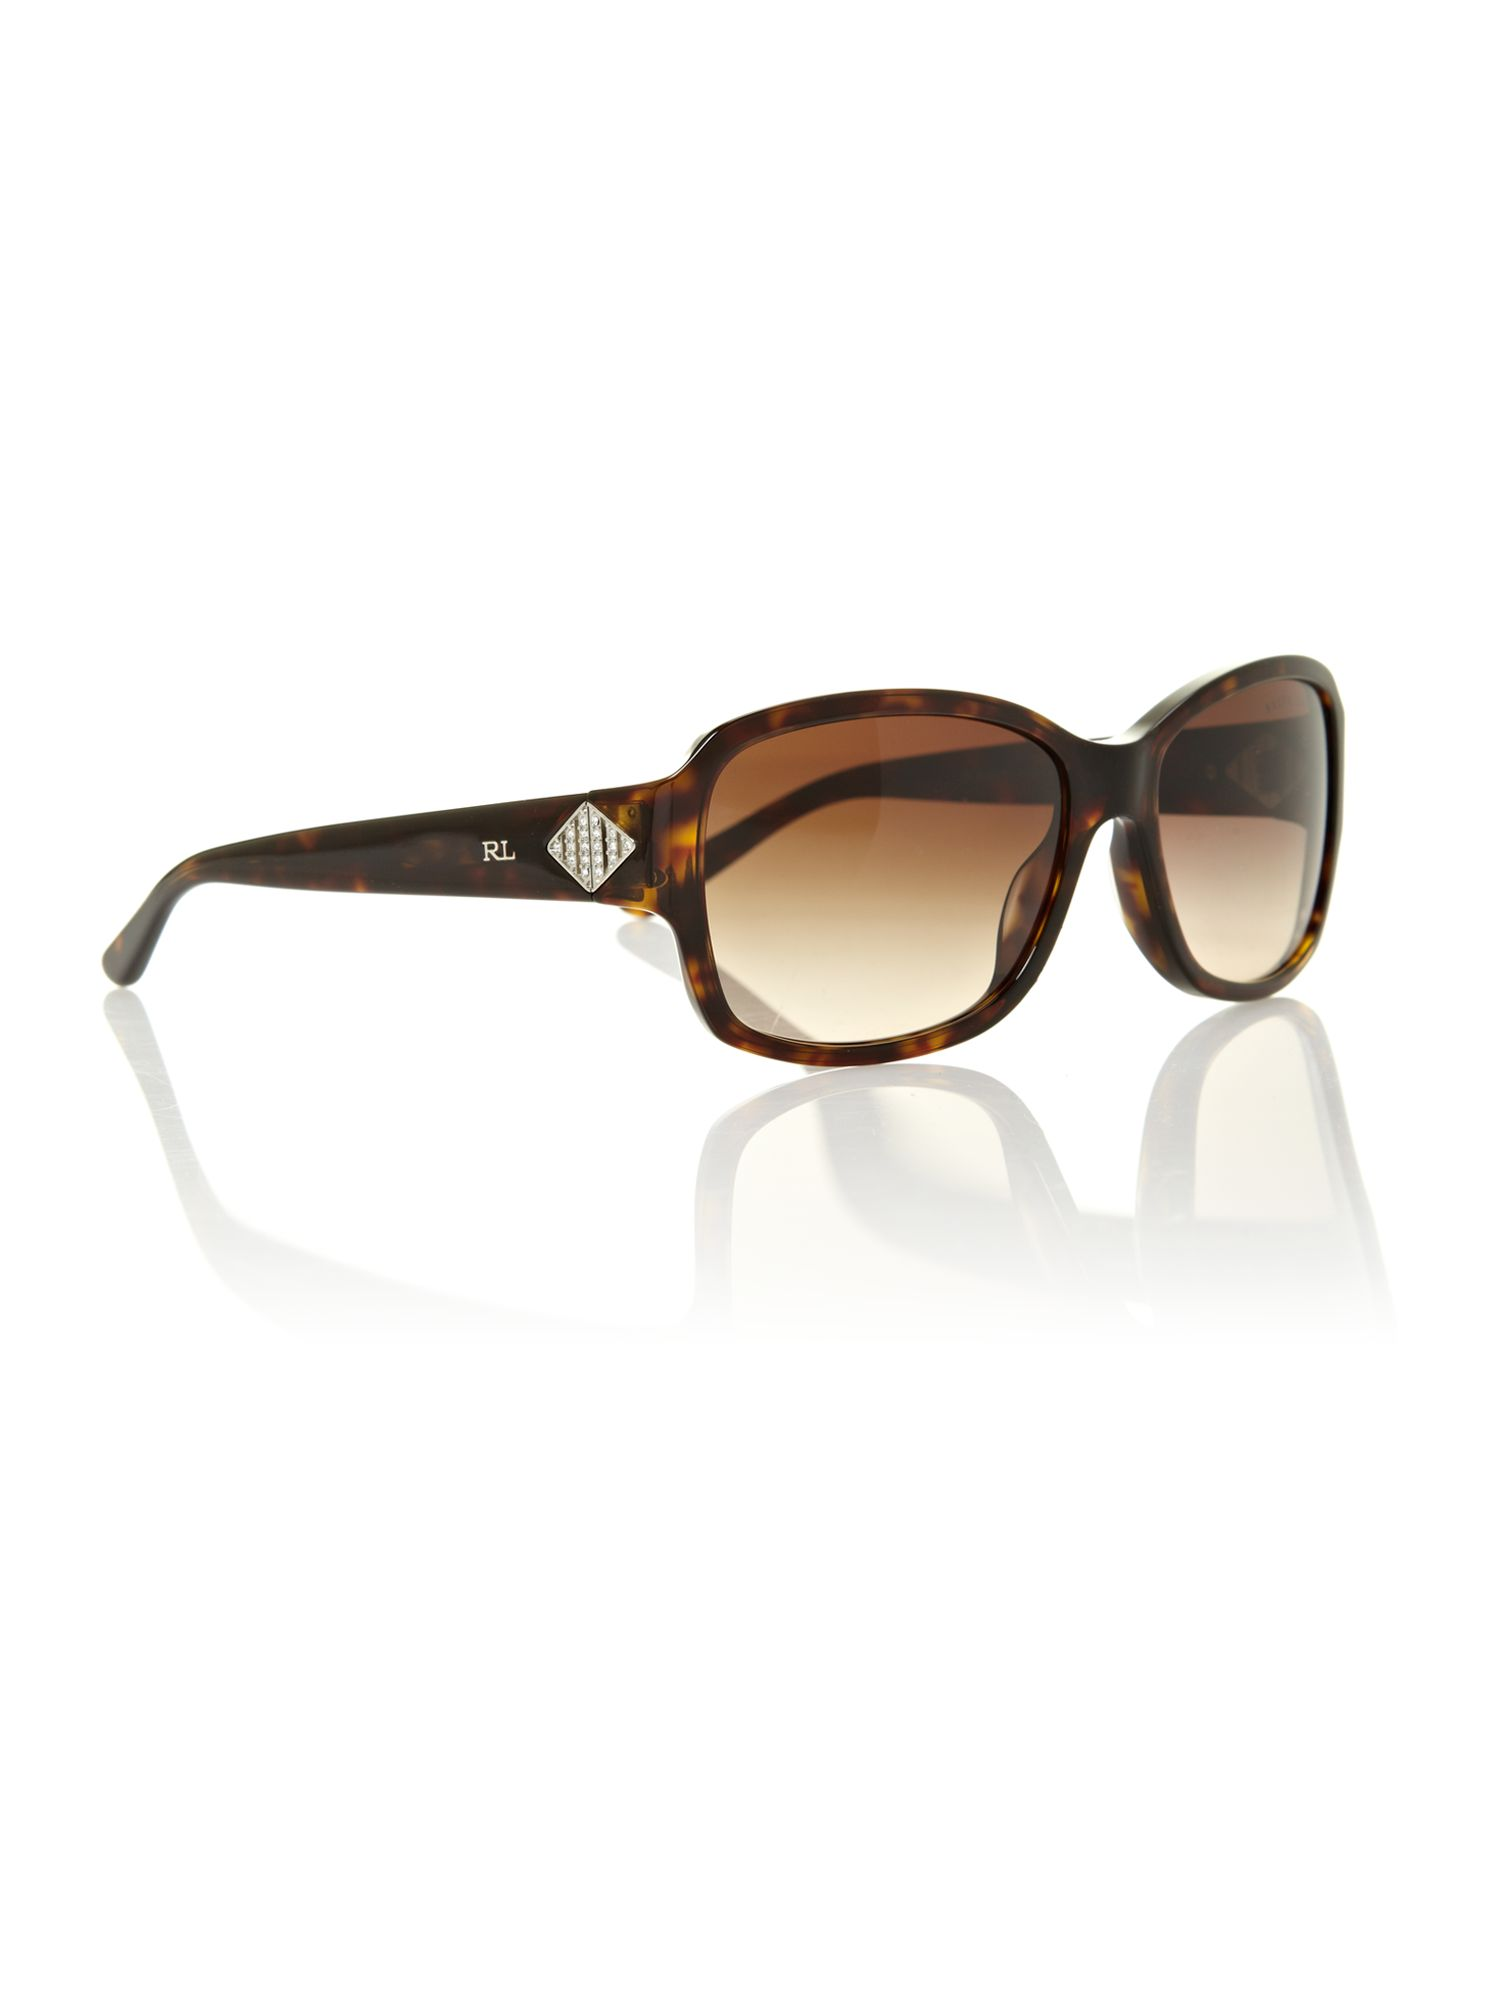 Ladies RL8102 art deco sunglasses